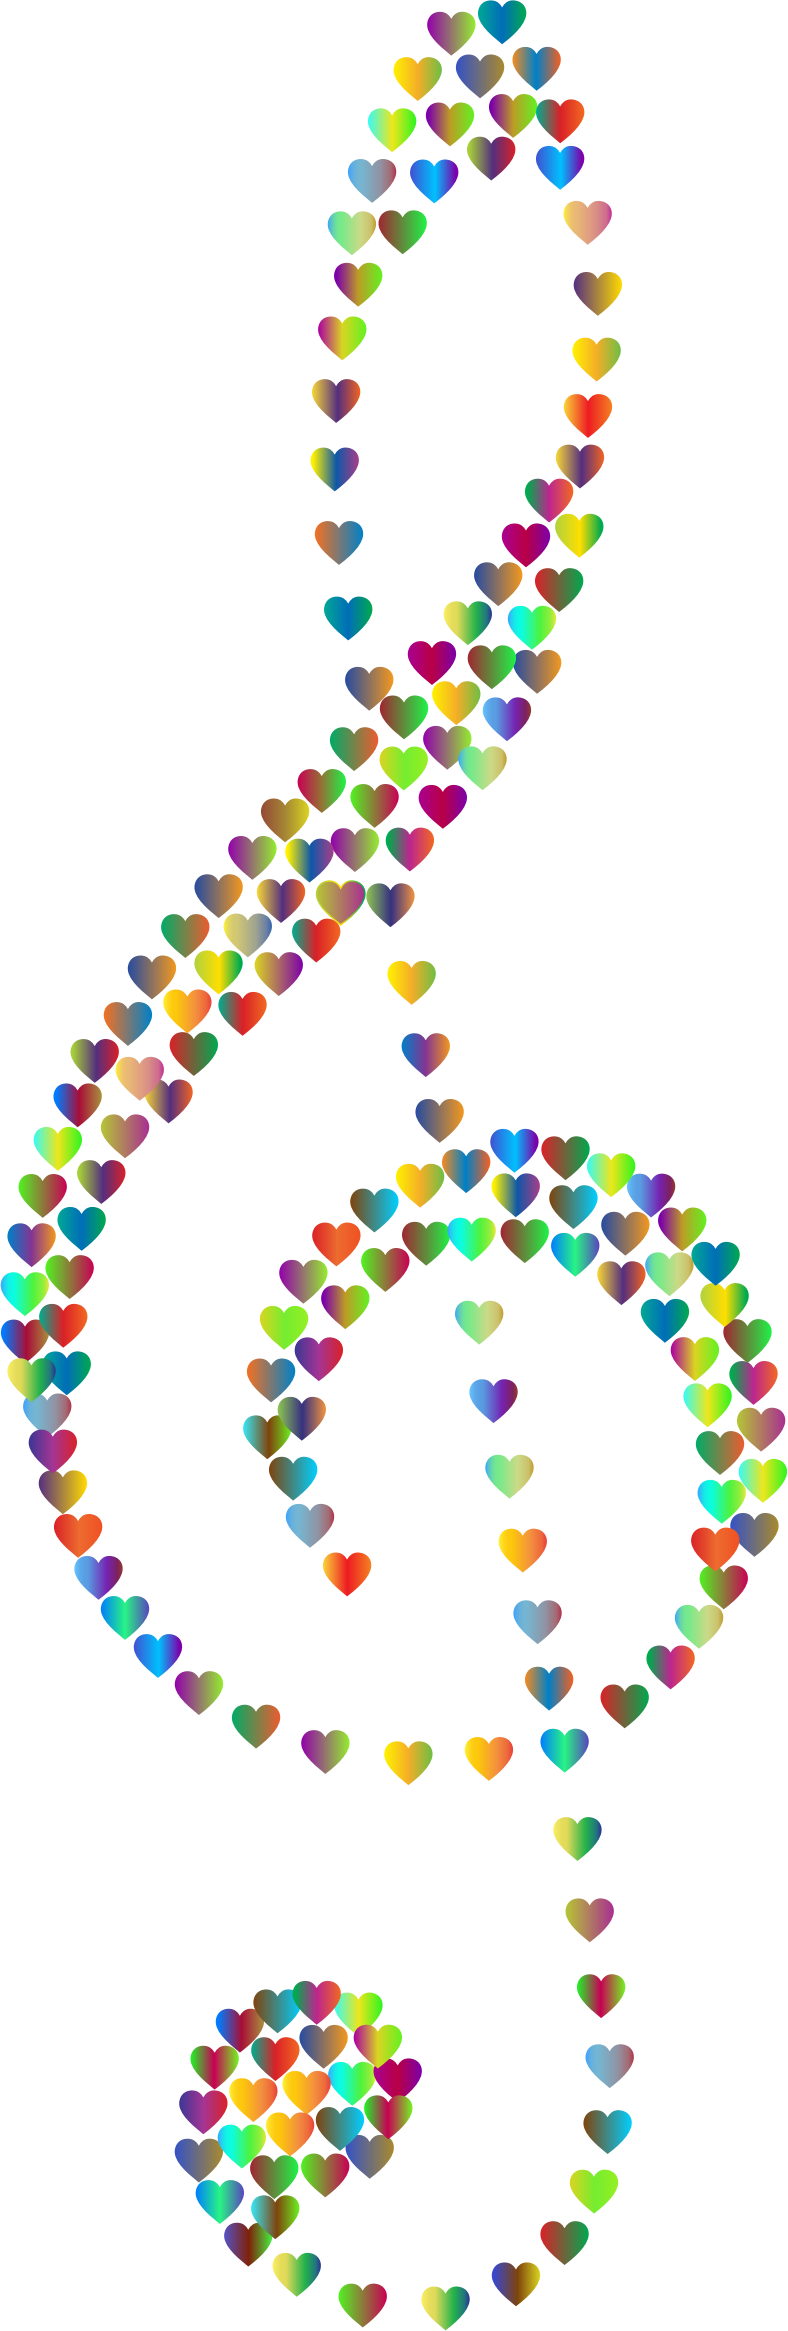 Prismatic Clef Hearts 3 No Background by GDJ